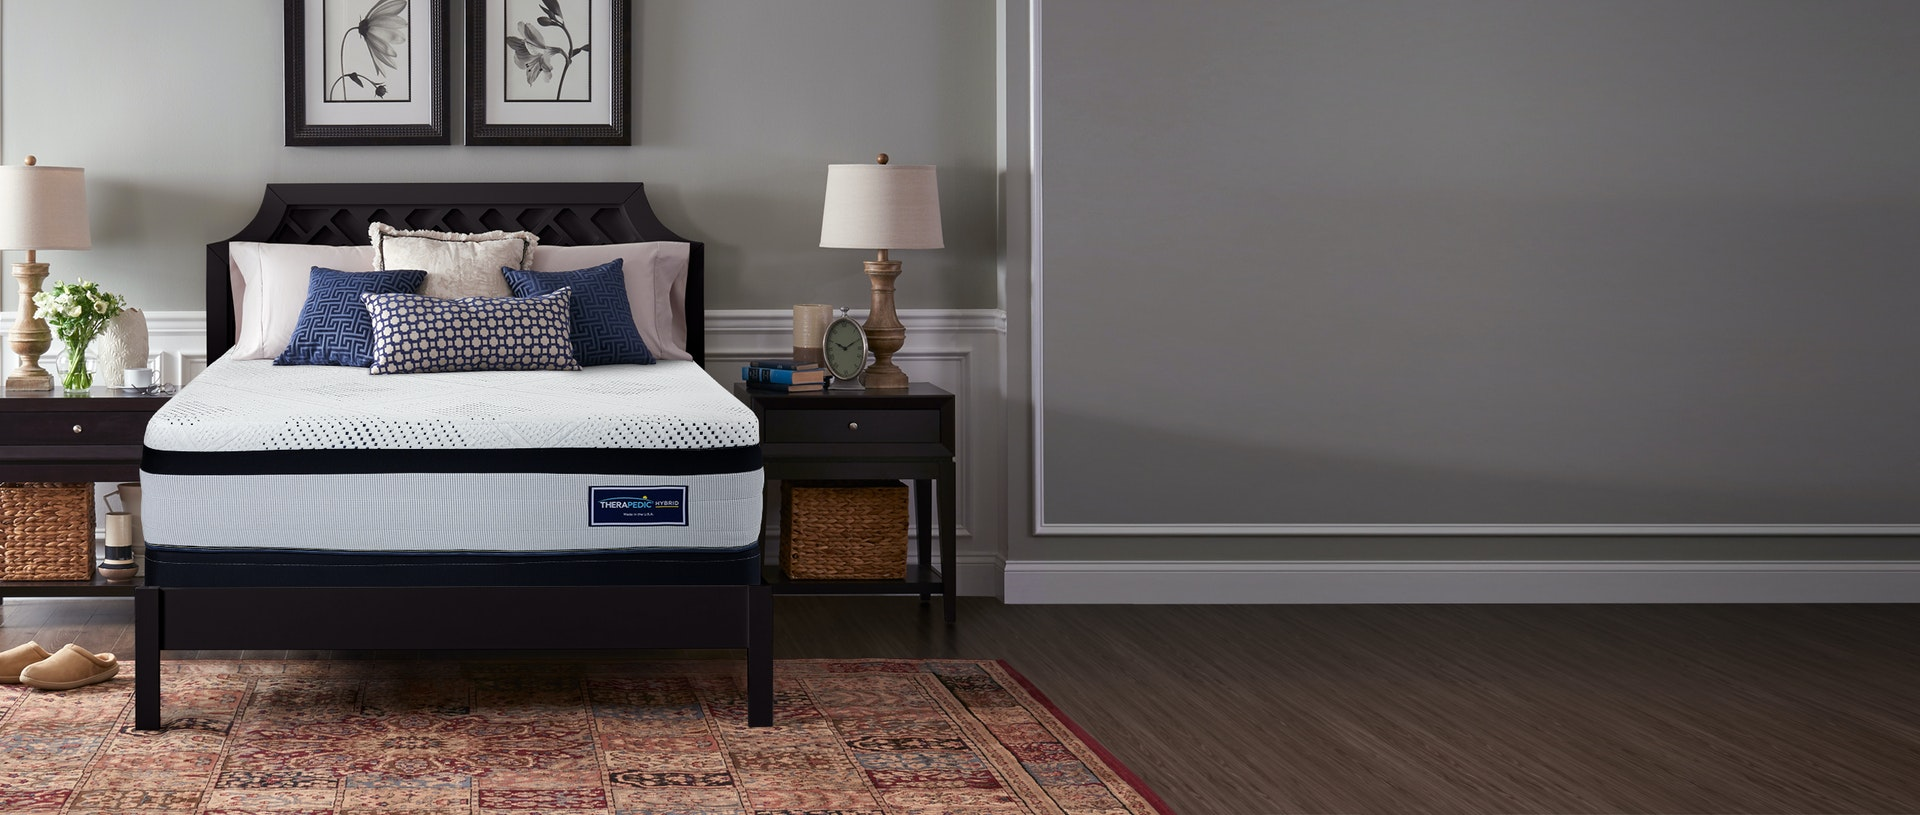 Therapedic Hybrid Mattress in a bedroom setting